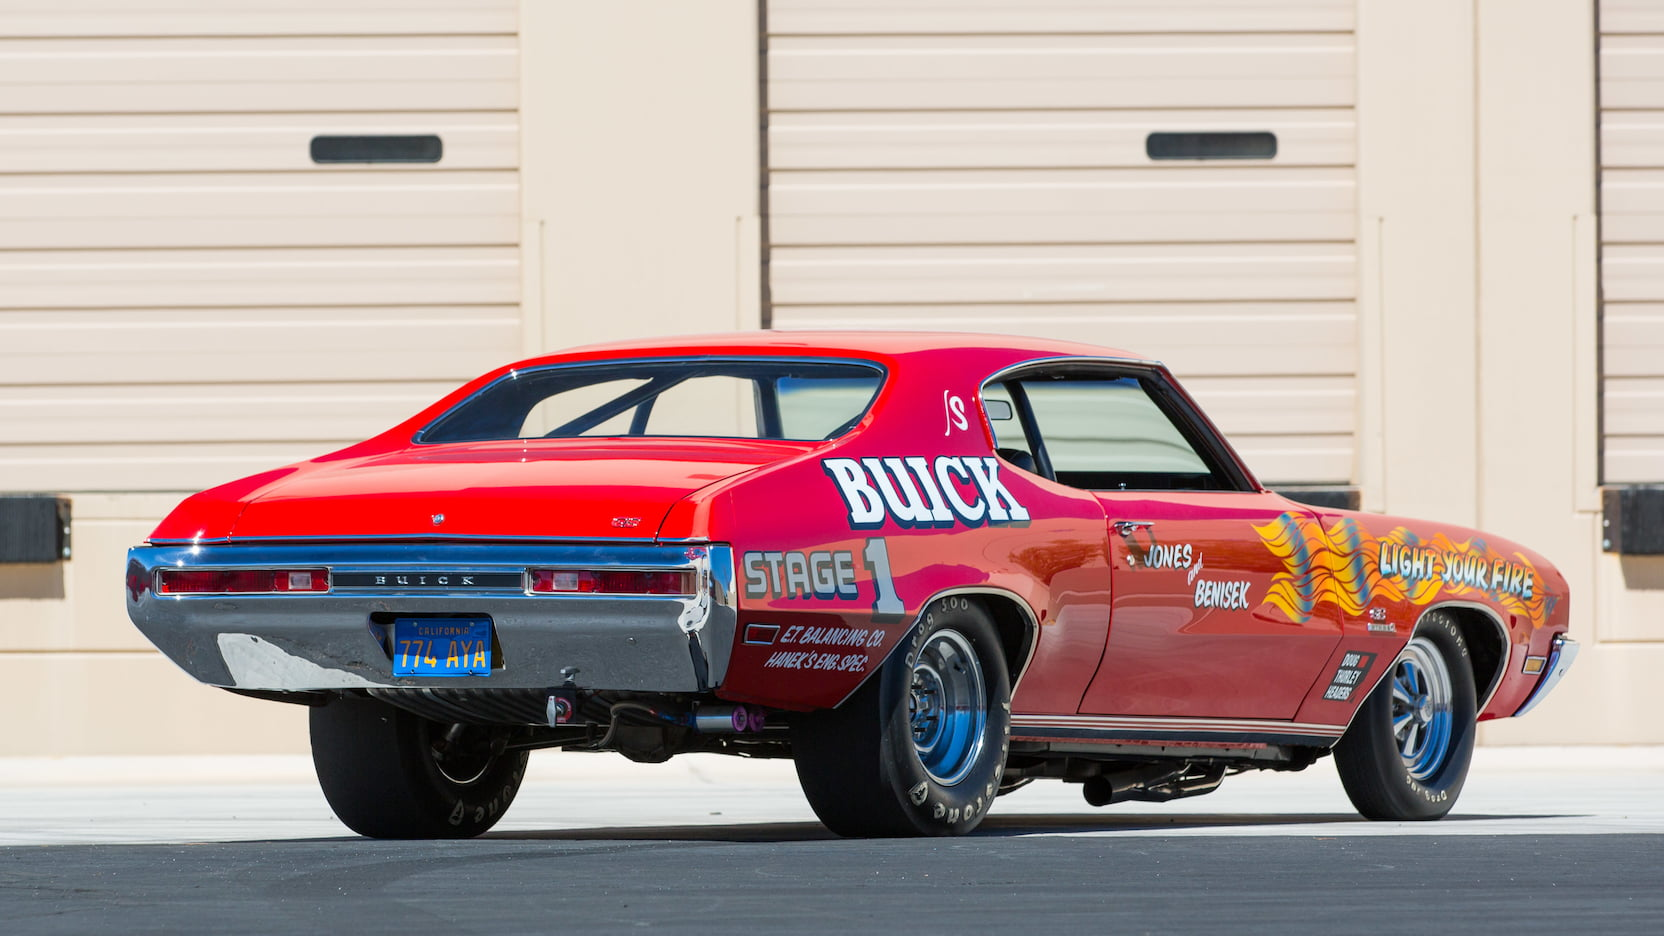 1970 Buick GS Stage II rear 3/4